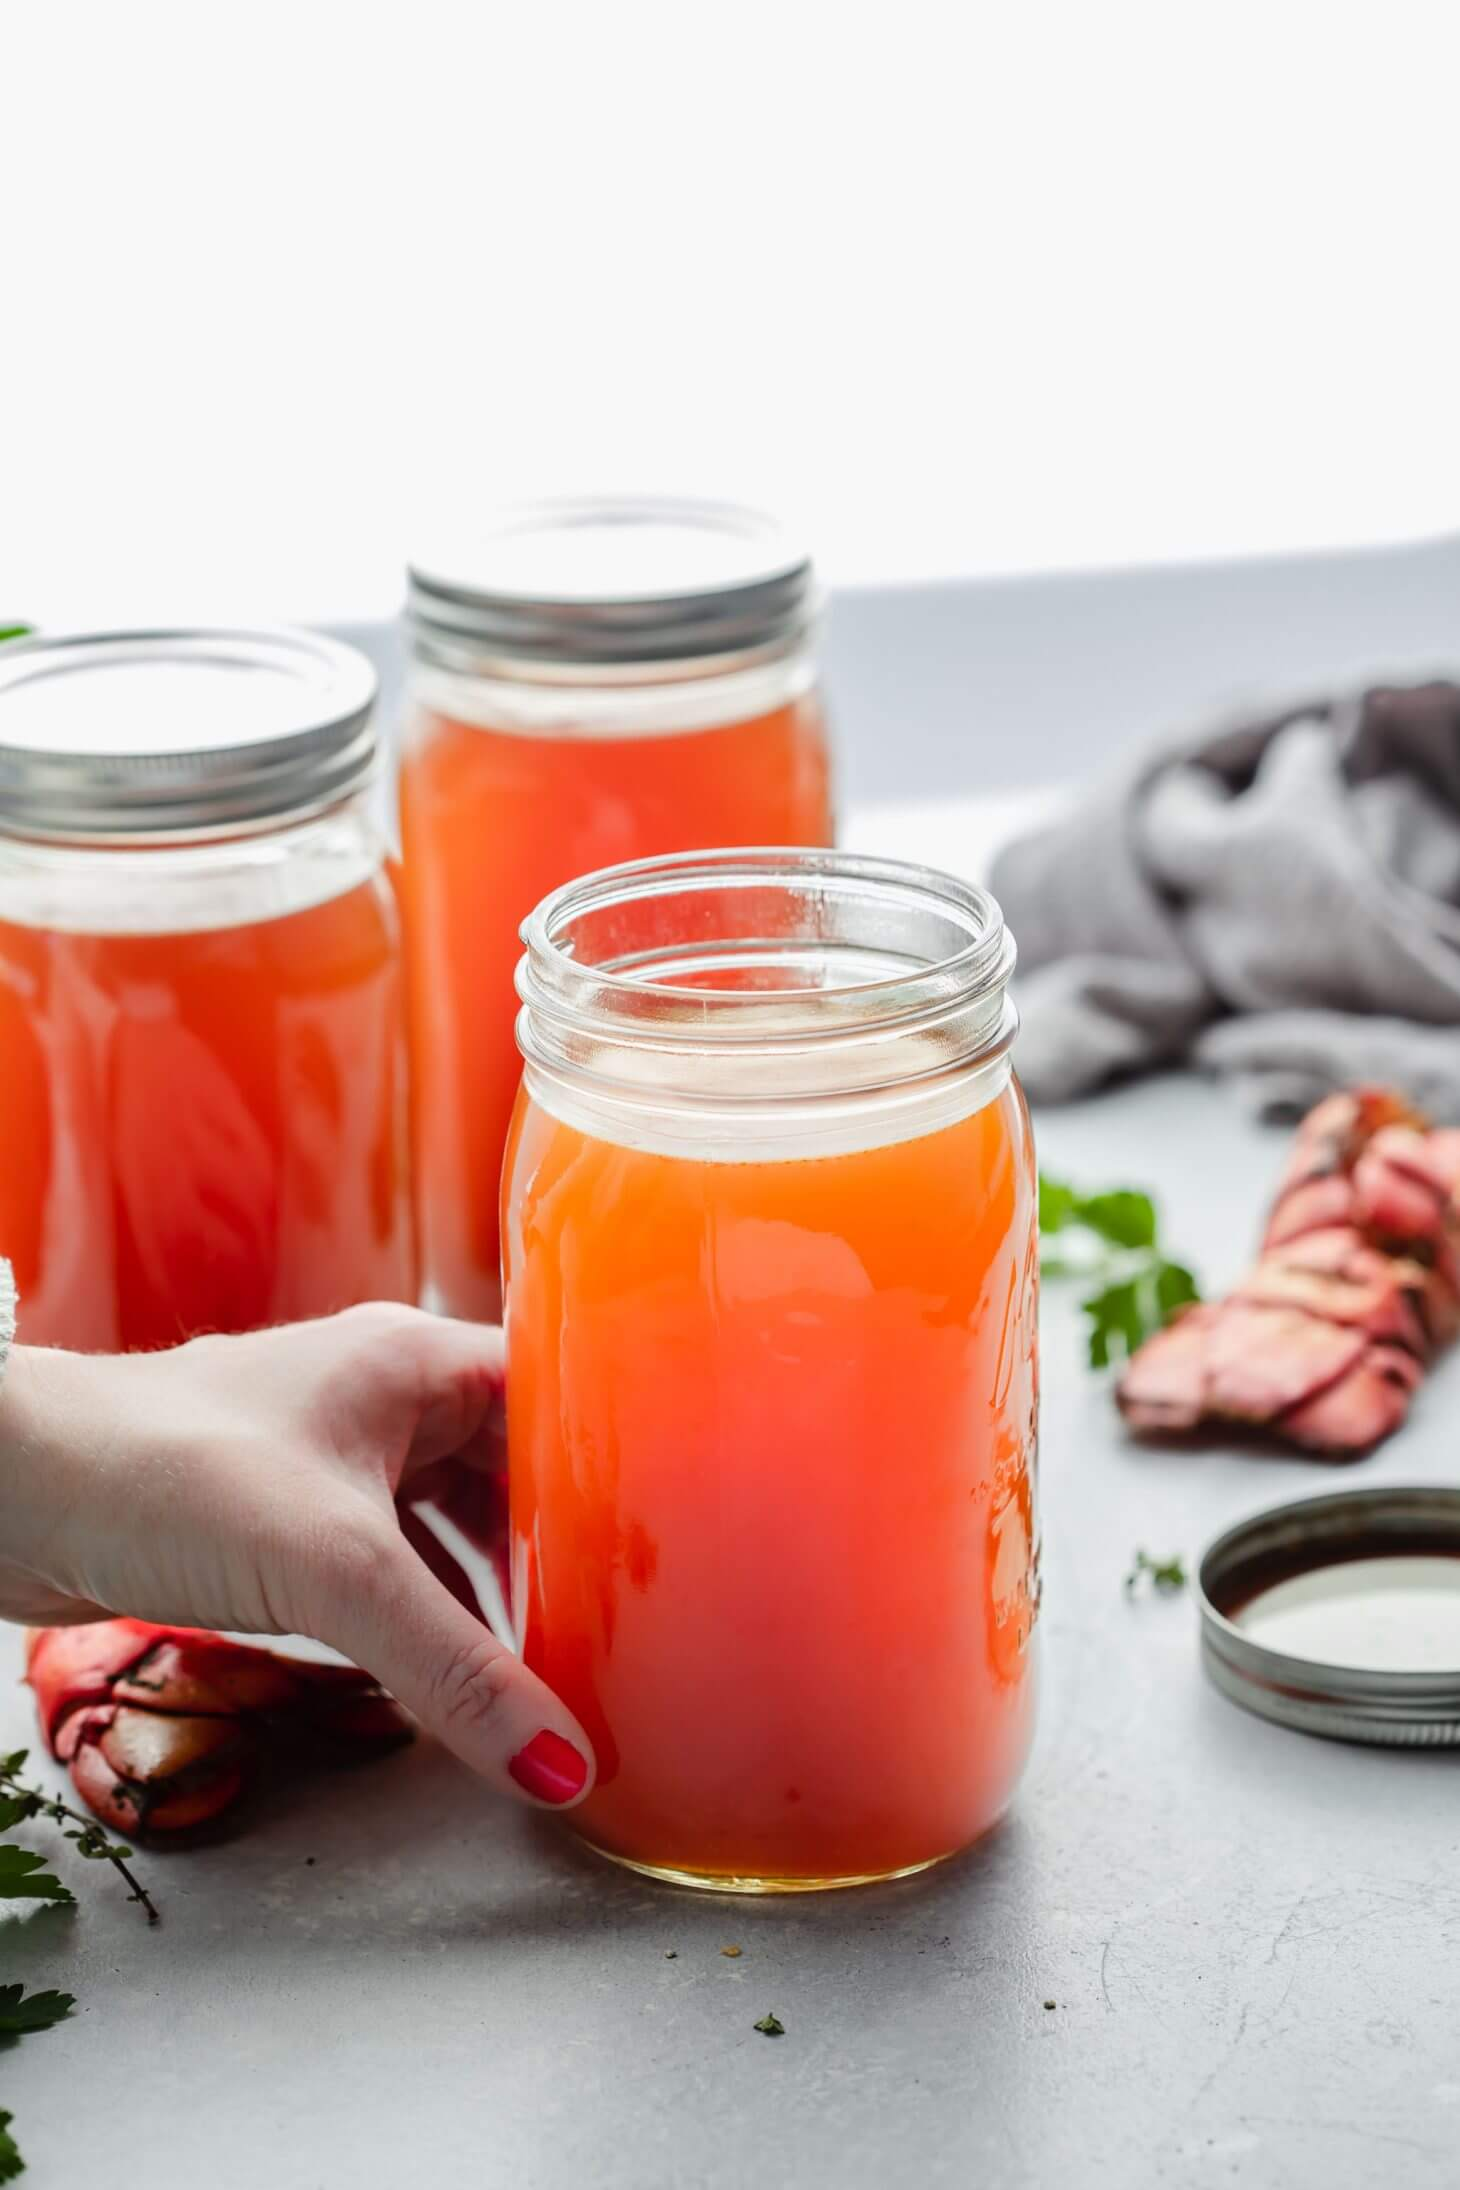 Seafood stock in jars